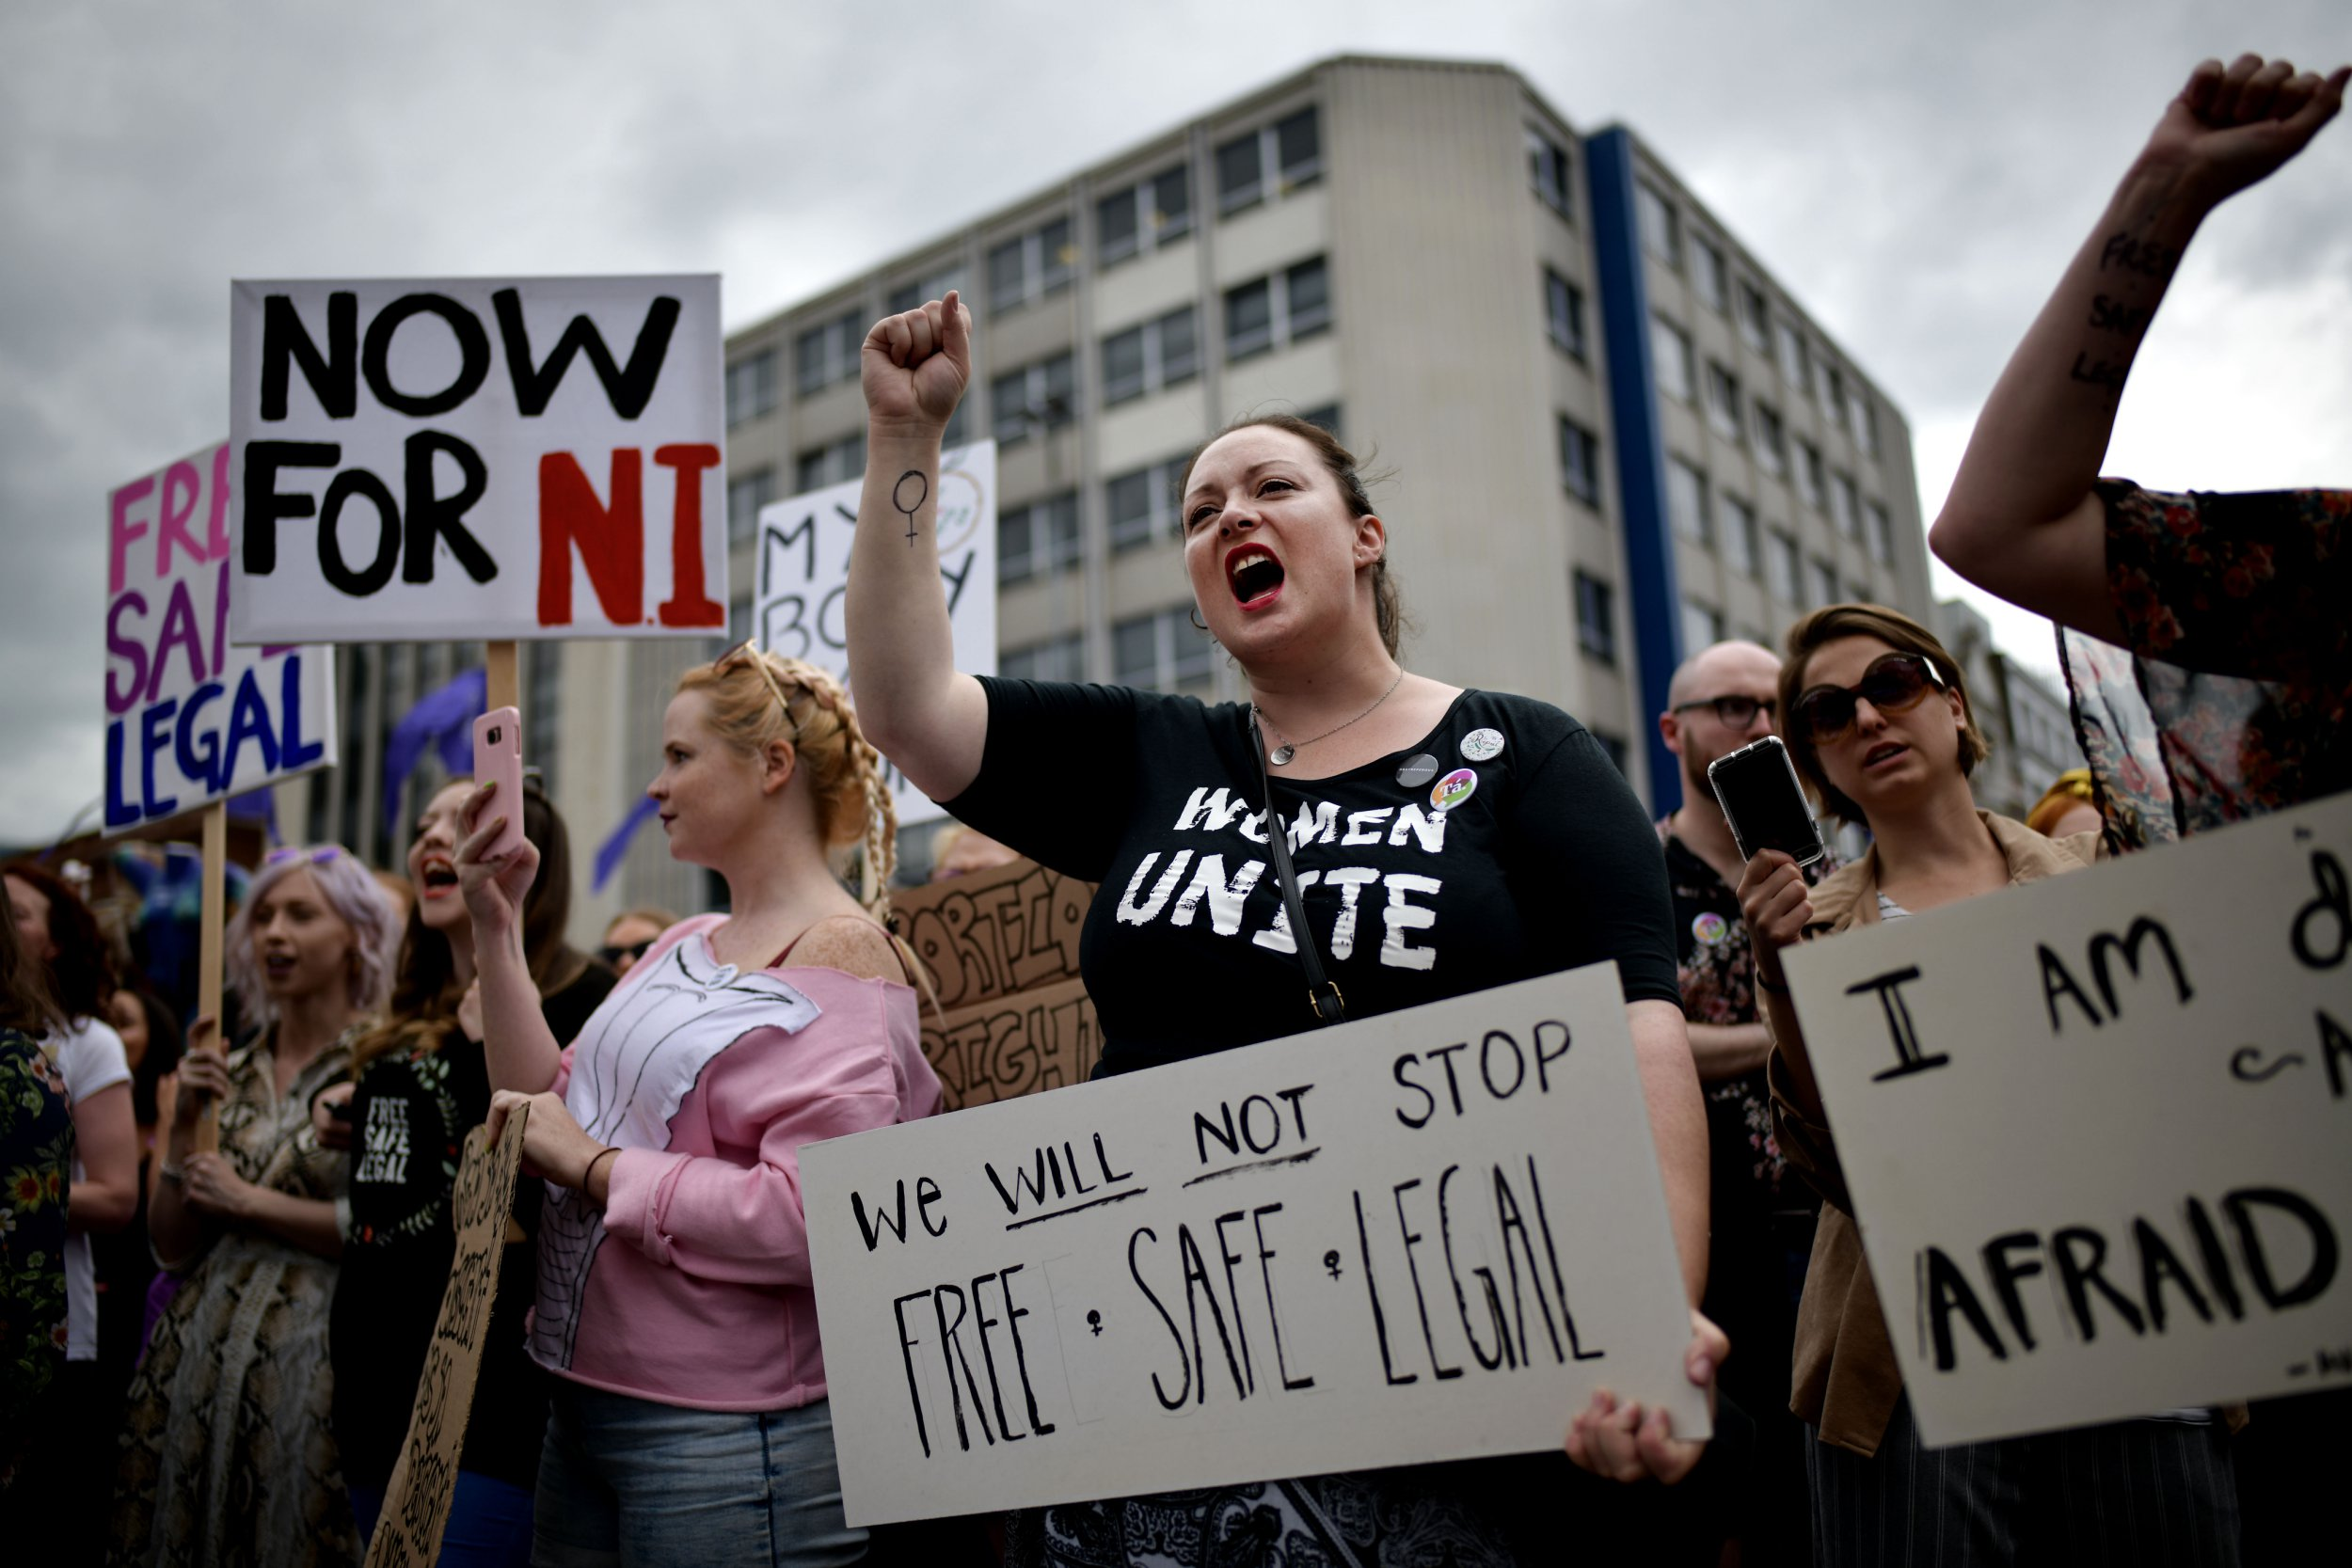 Women from Northern Ireland will be able to get abortions in the Republic